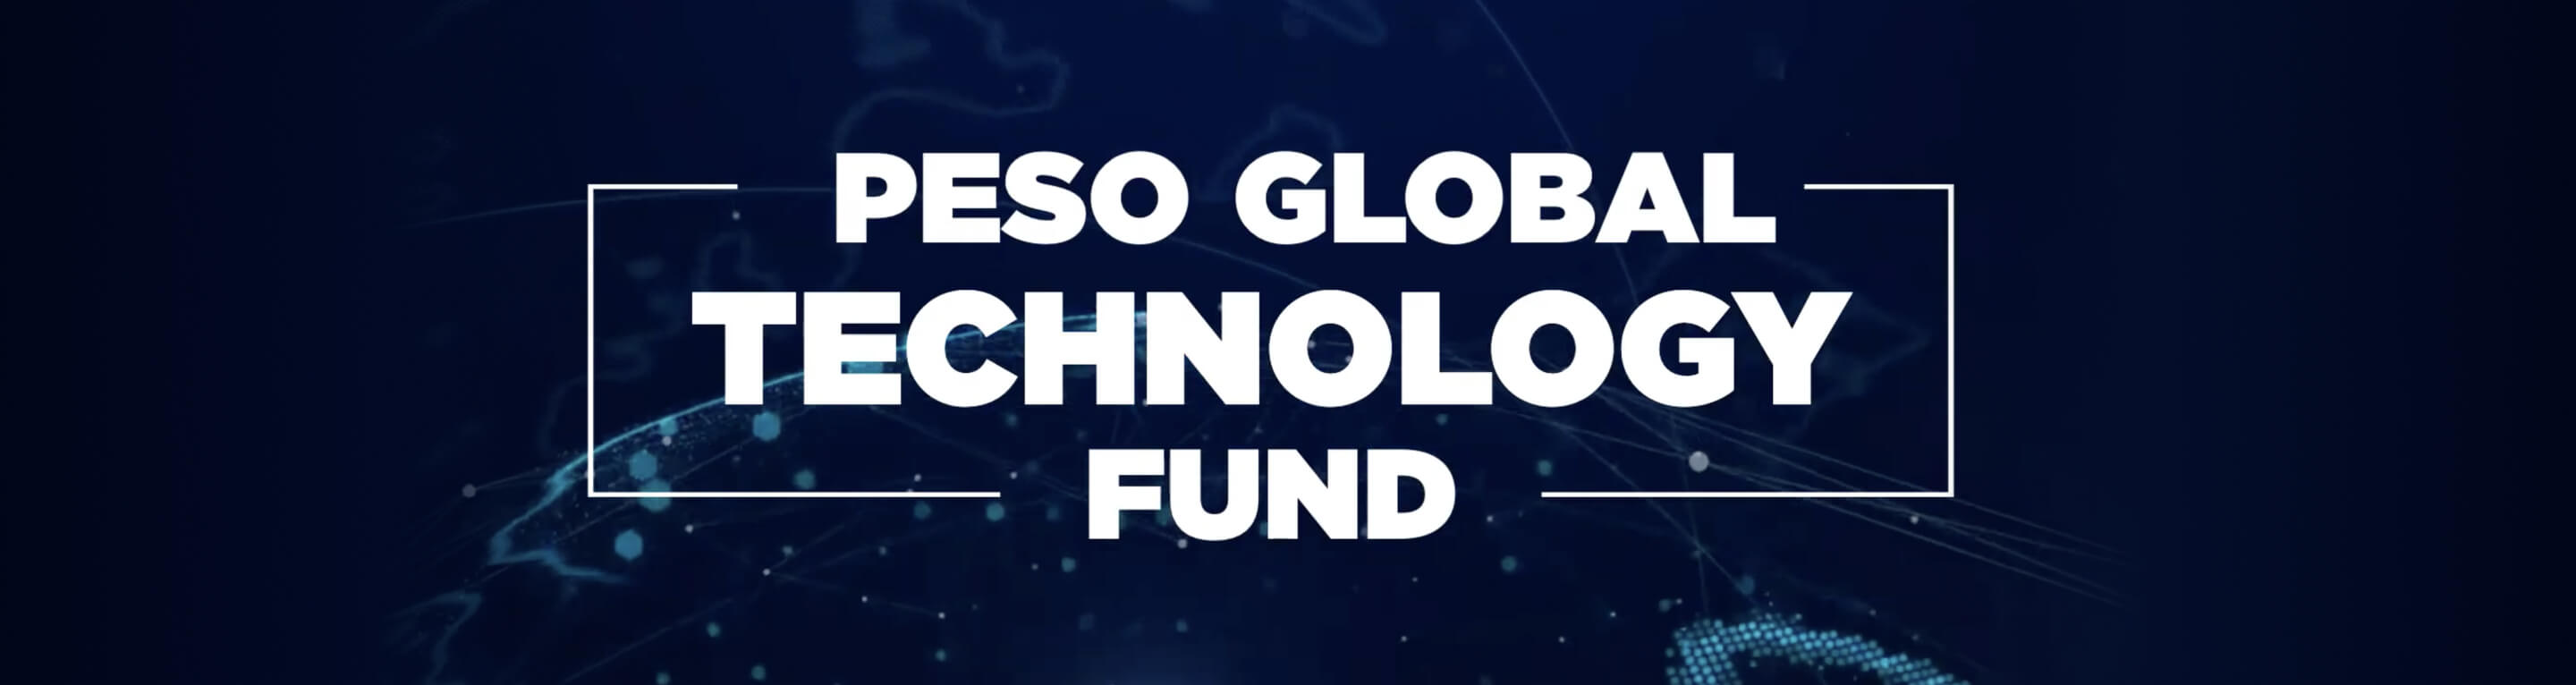 peso global technology fund